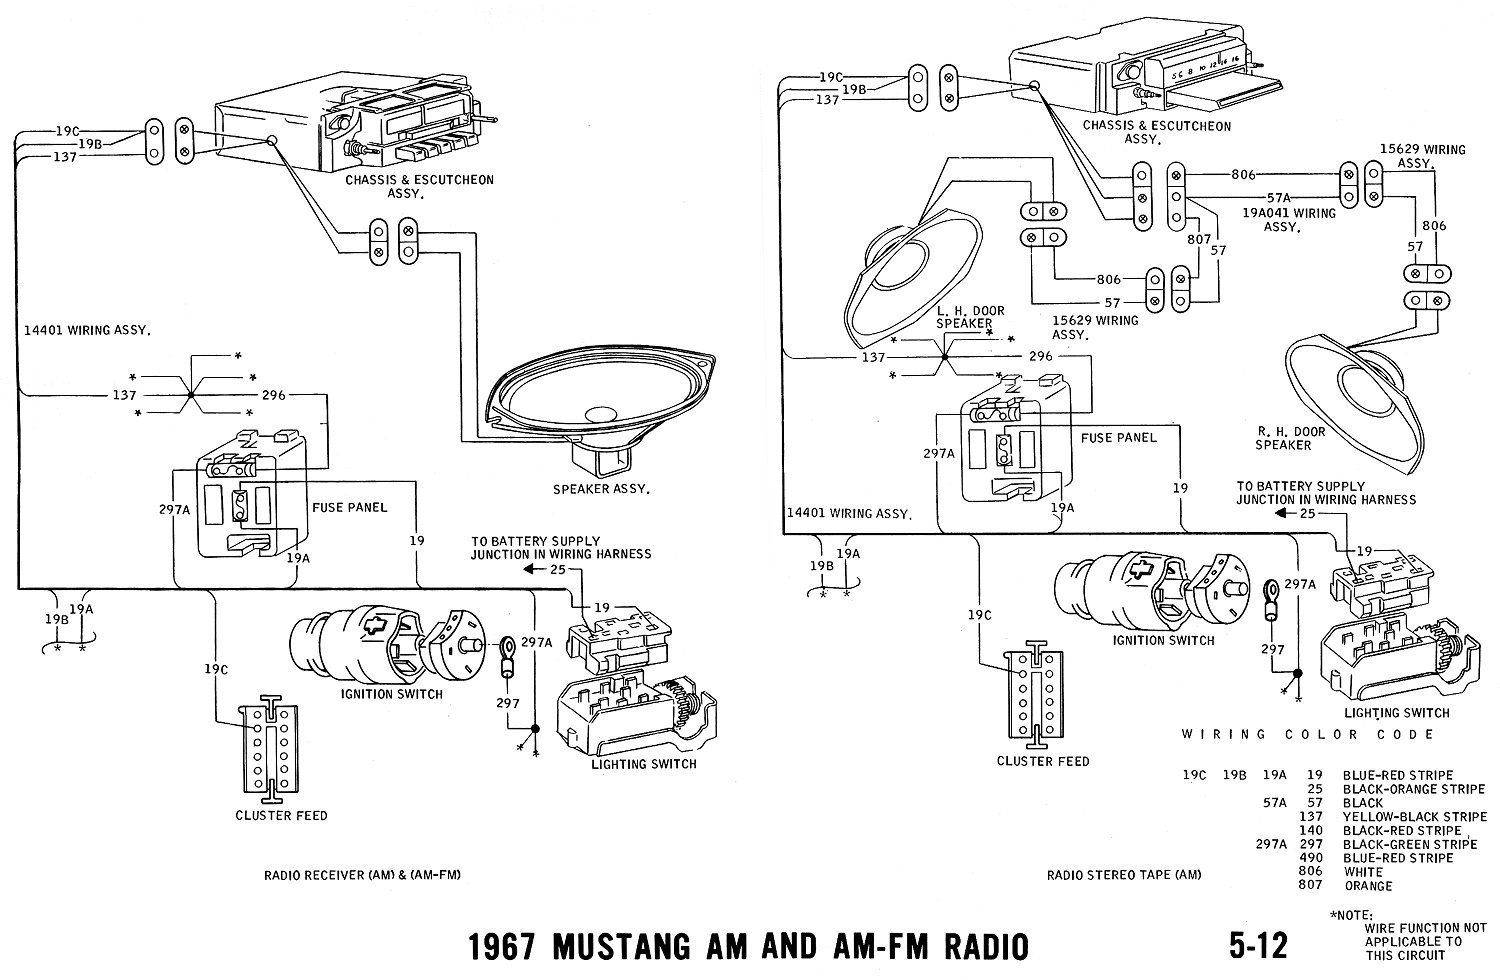 1967 Chevy Van Wiring Diagram Another Blog About Painless 1955 Ford Fairlane 67 C10 Vacuum Free Engine Image For